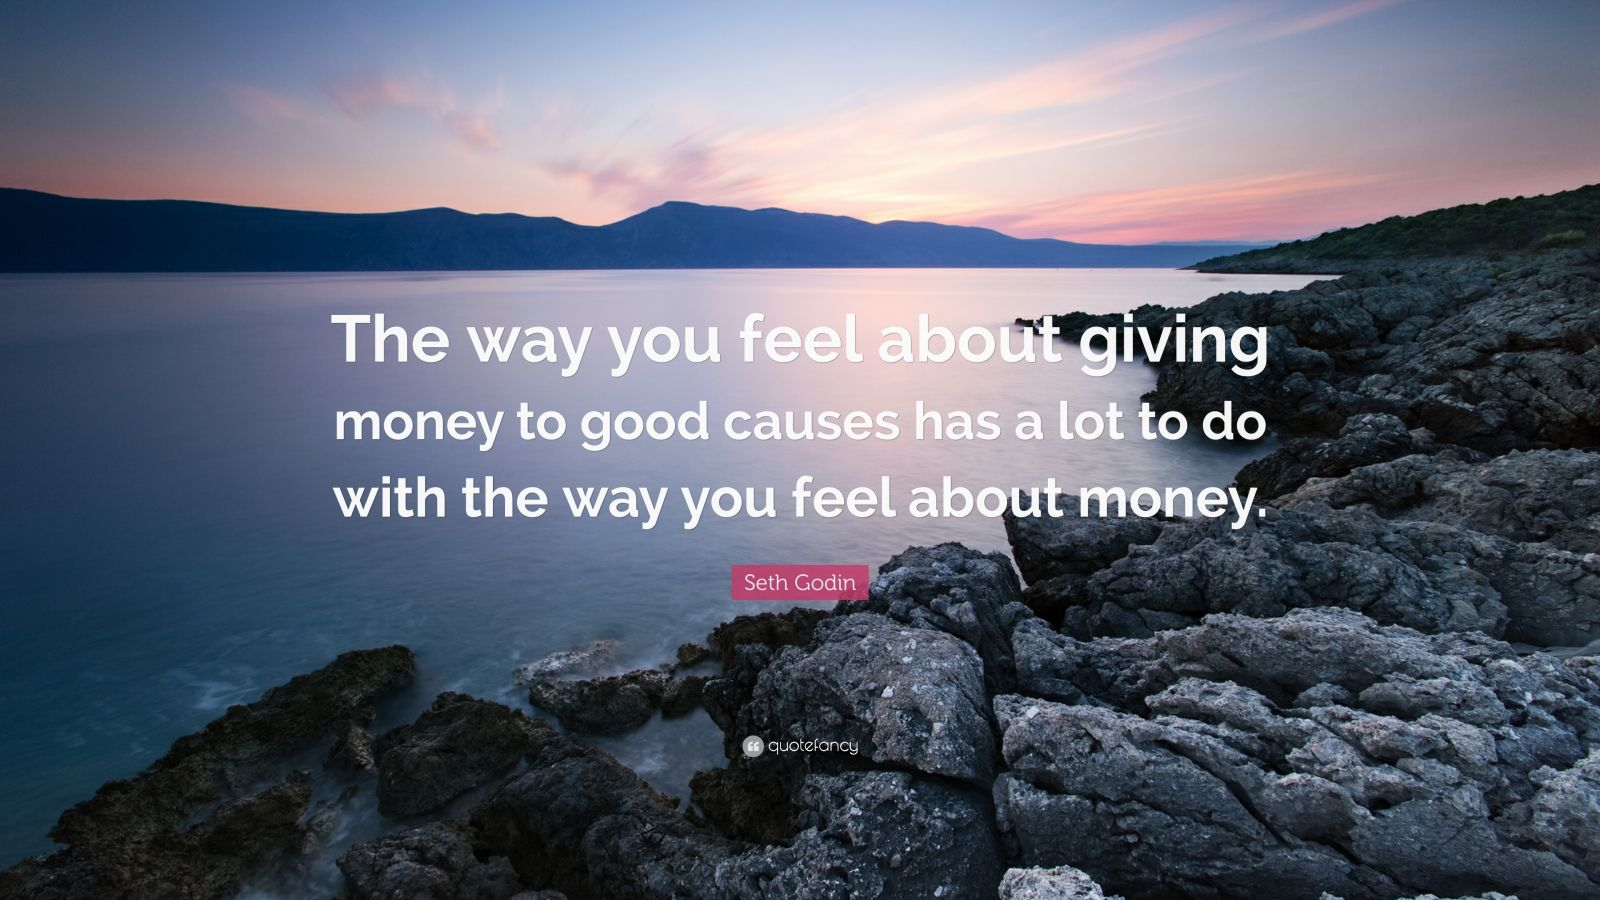 """Seth Godin Quote: """"The way you feel about giving money to good causes has a lot to do with the way you feel about money."""""""